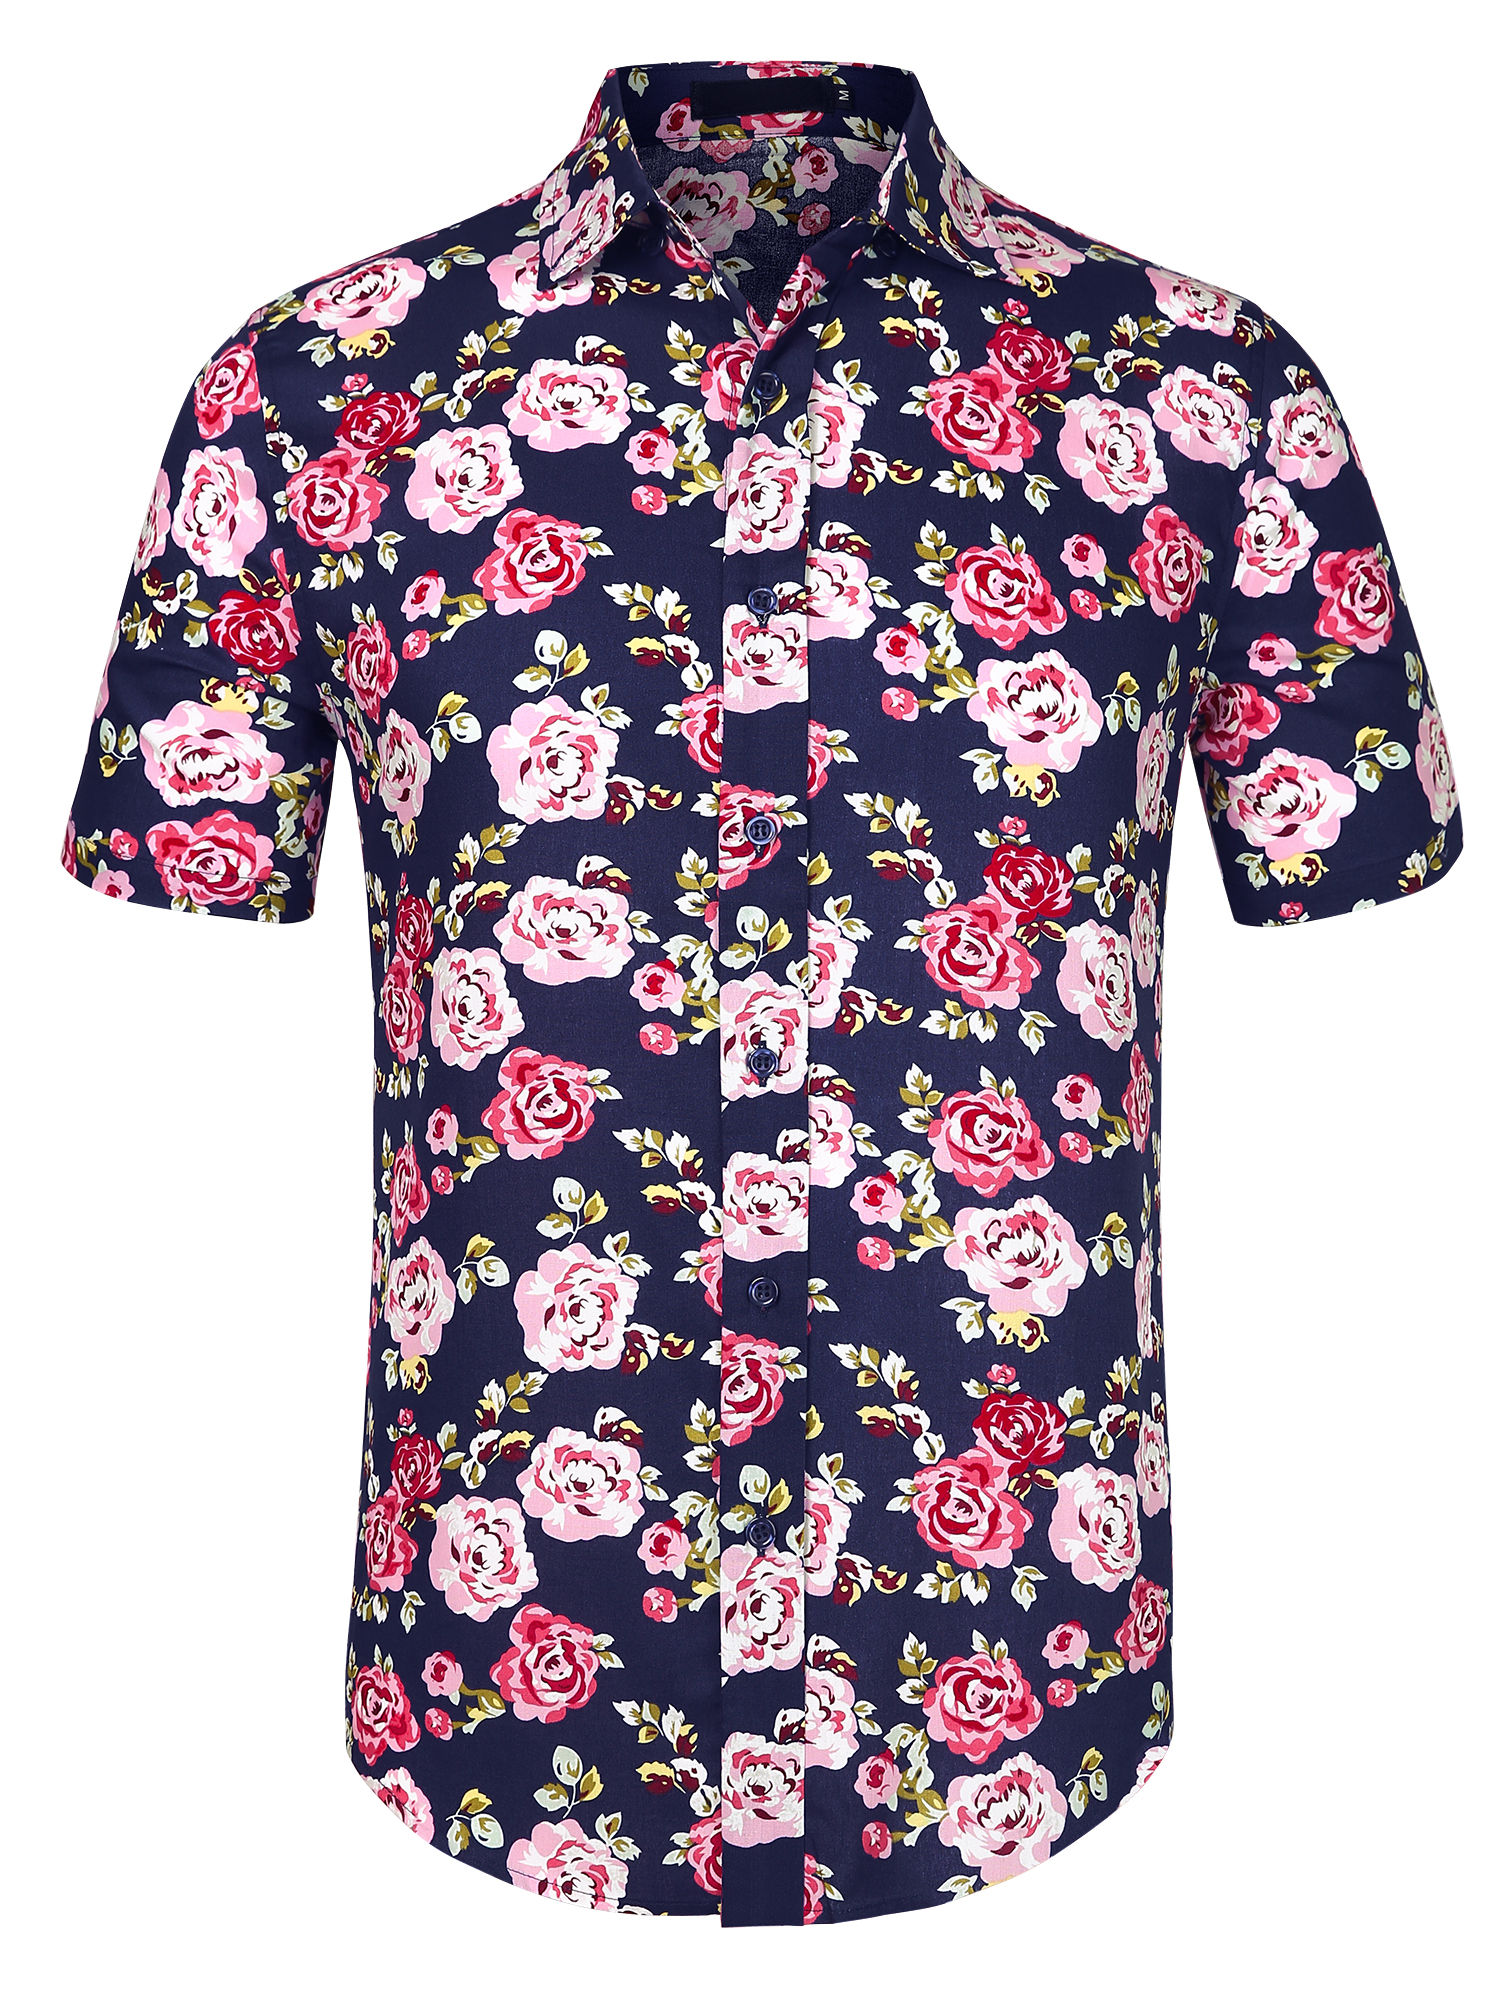 Men Slim Fit Floral Print Point Collar Short Sleeve Button Down Shirt Black Pink L